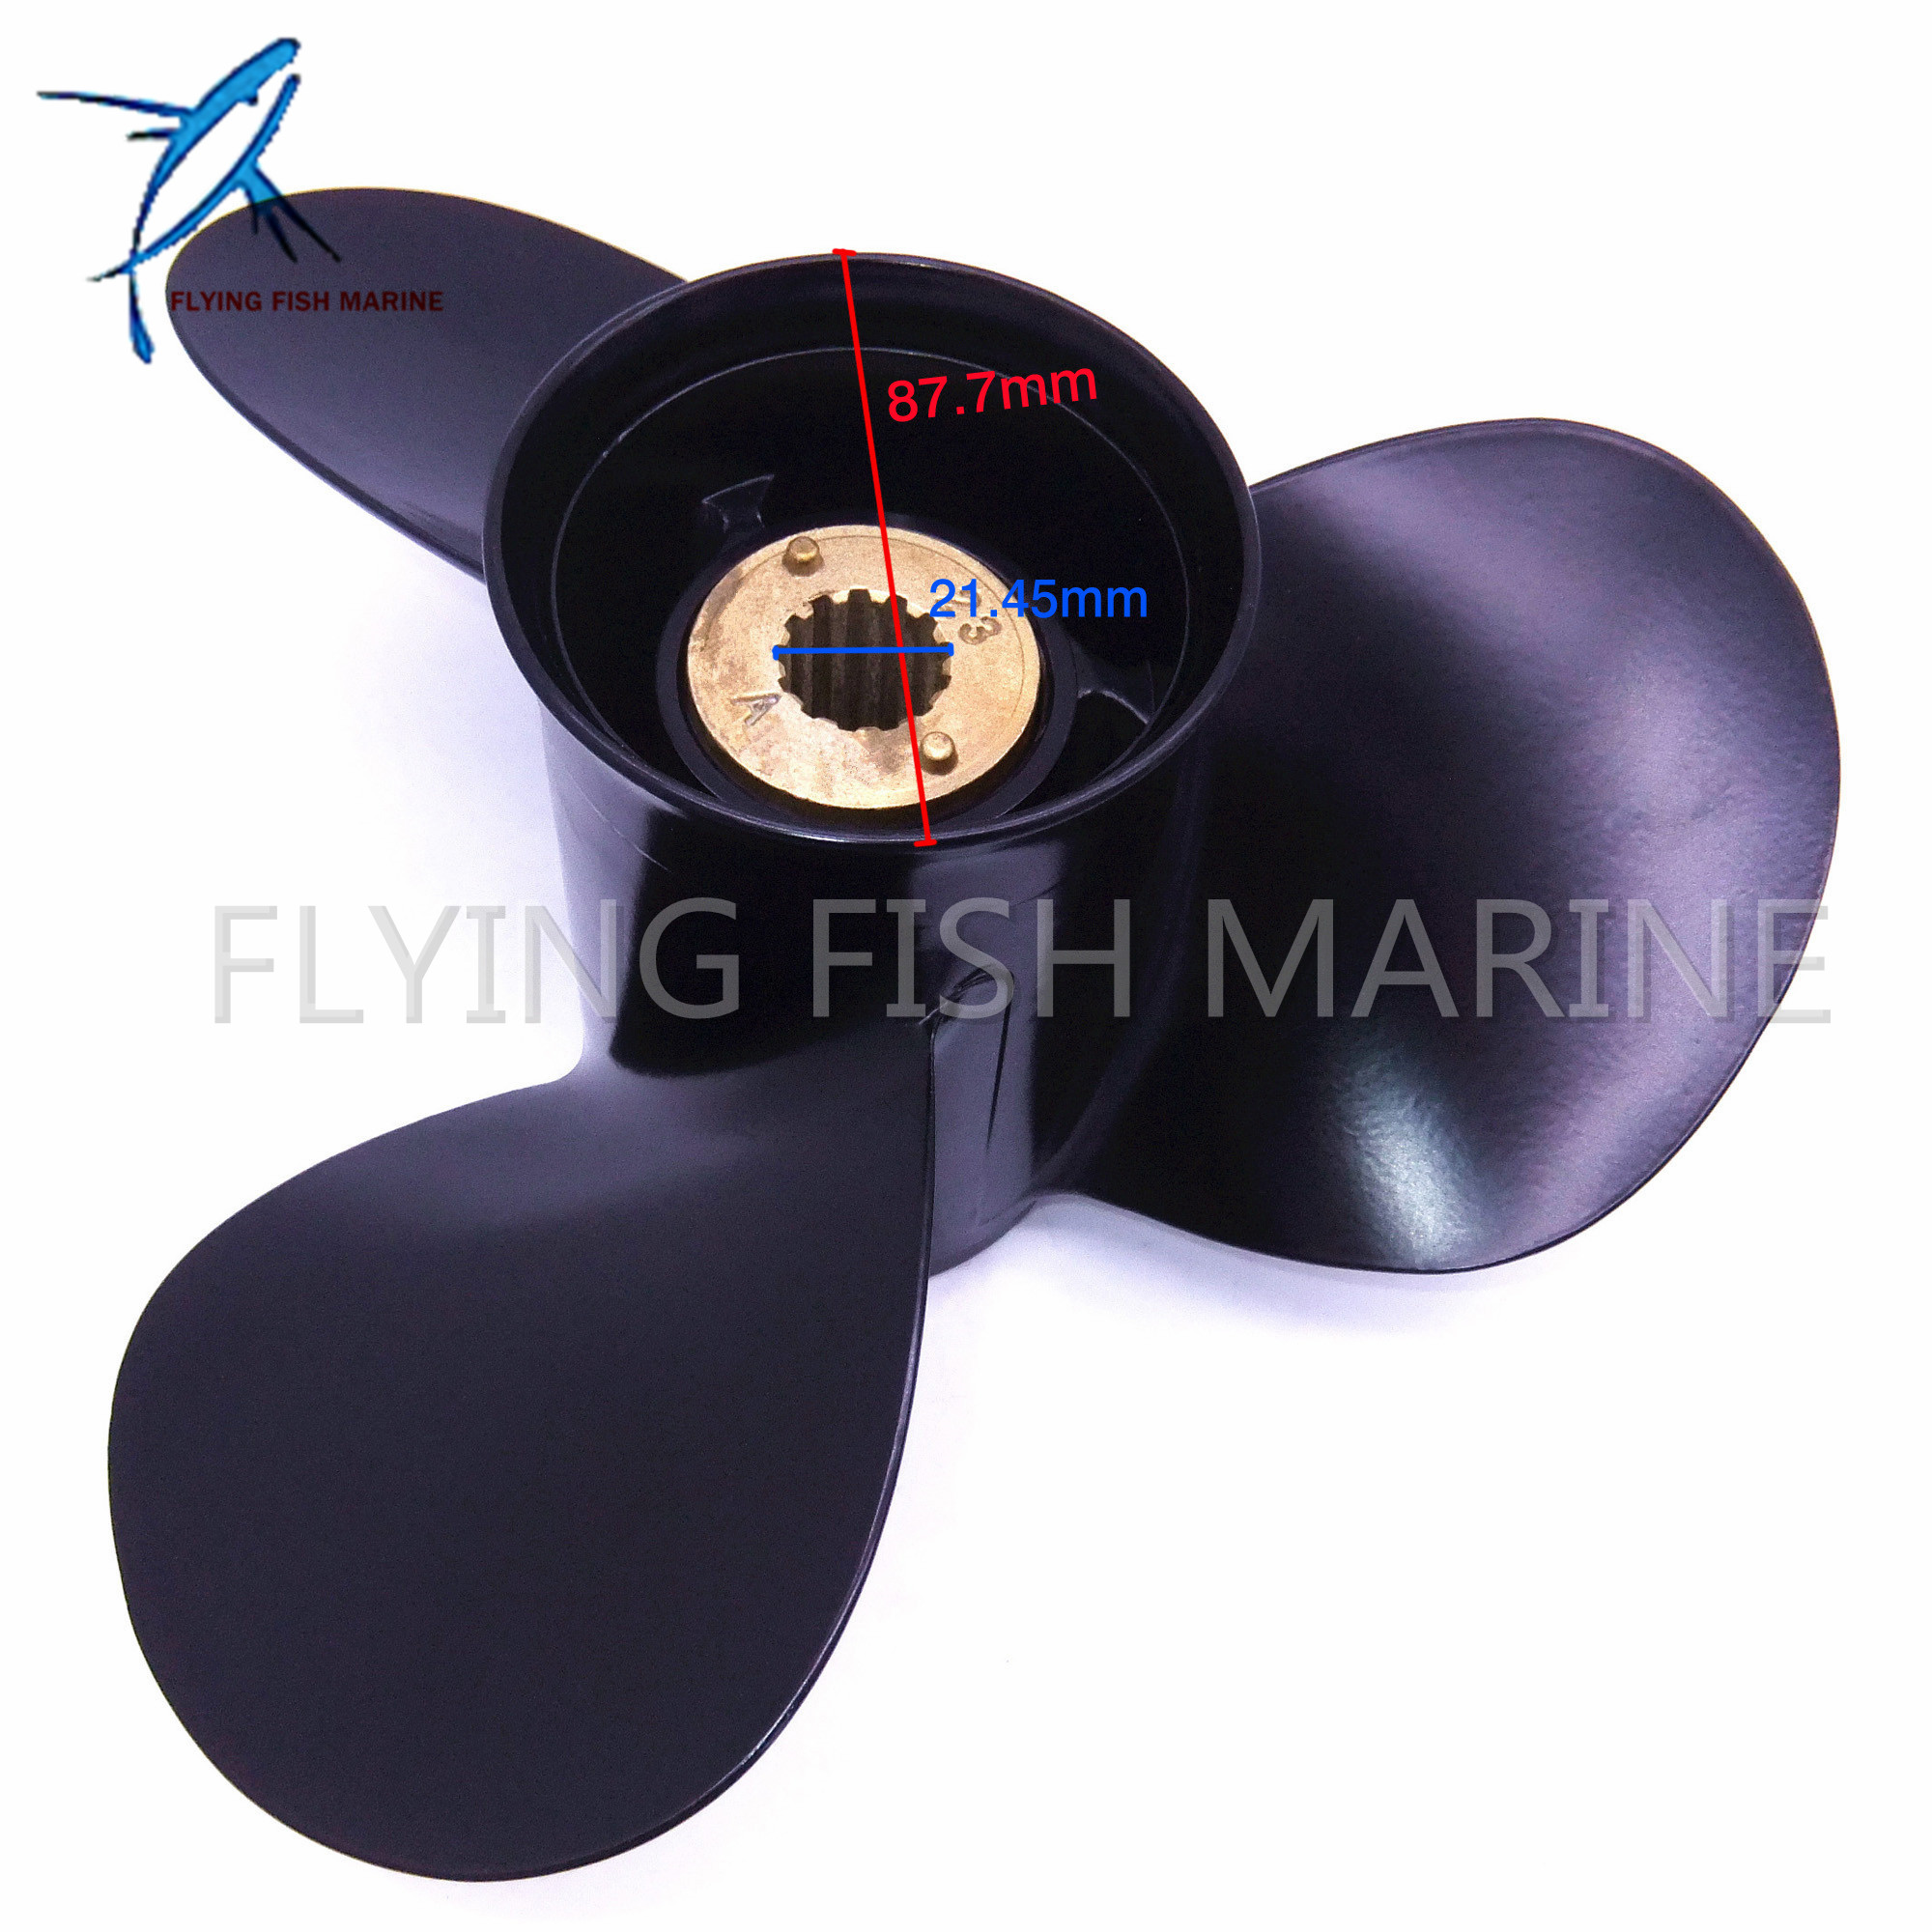 11 1/8x13 G Aluminum Propeller for Mercury  40HP 45HP 48HP 50HP 55HP 60HP 70HP Boat Motors 11 1/8 x 13 G Outboard Engine